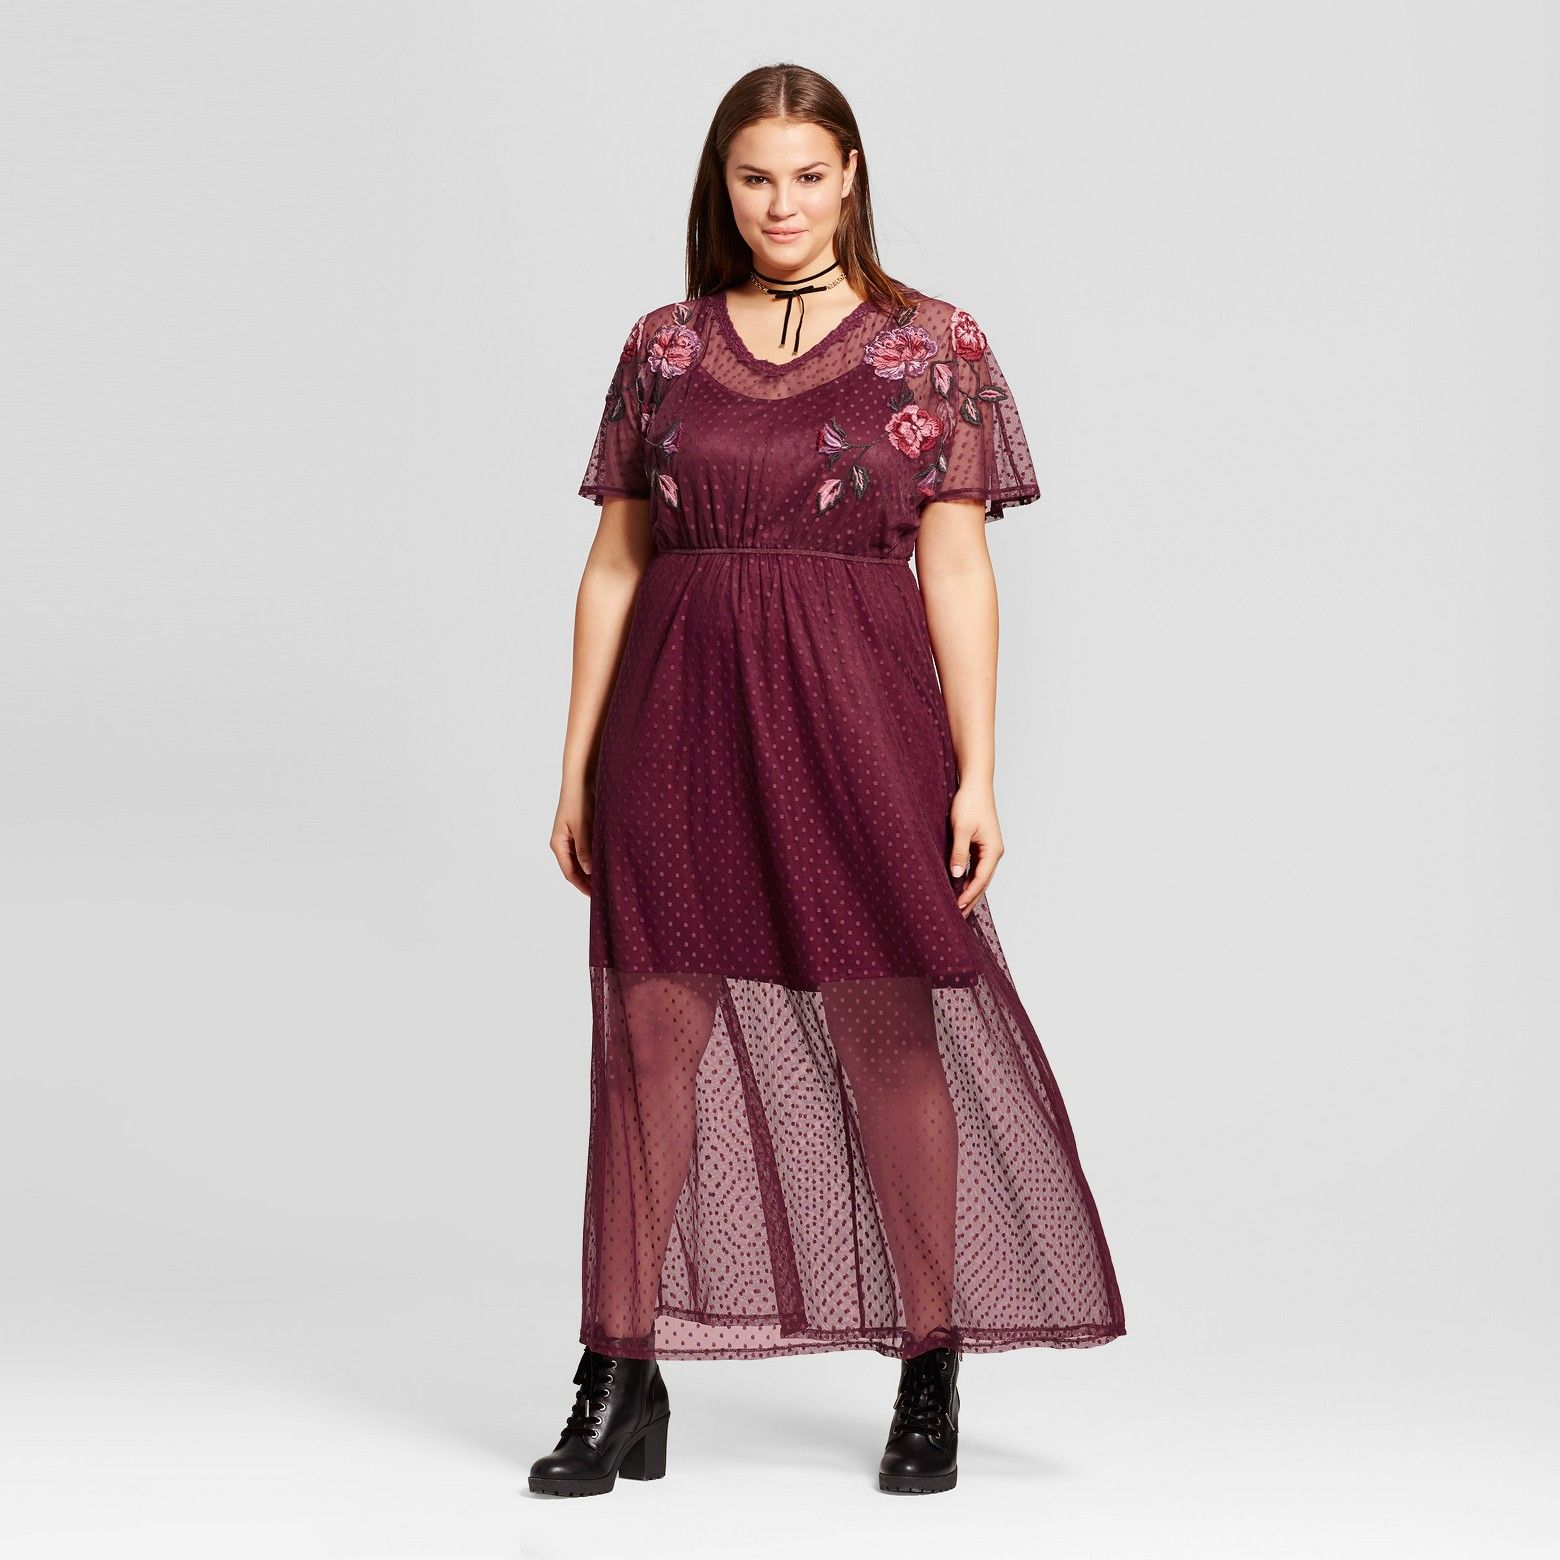 Xhilaration Womens Plus Size Mesh Embroidered Dress Rose Clothes